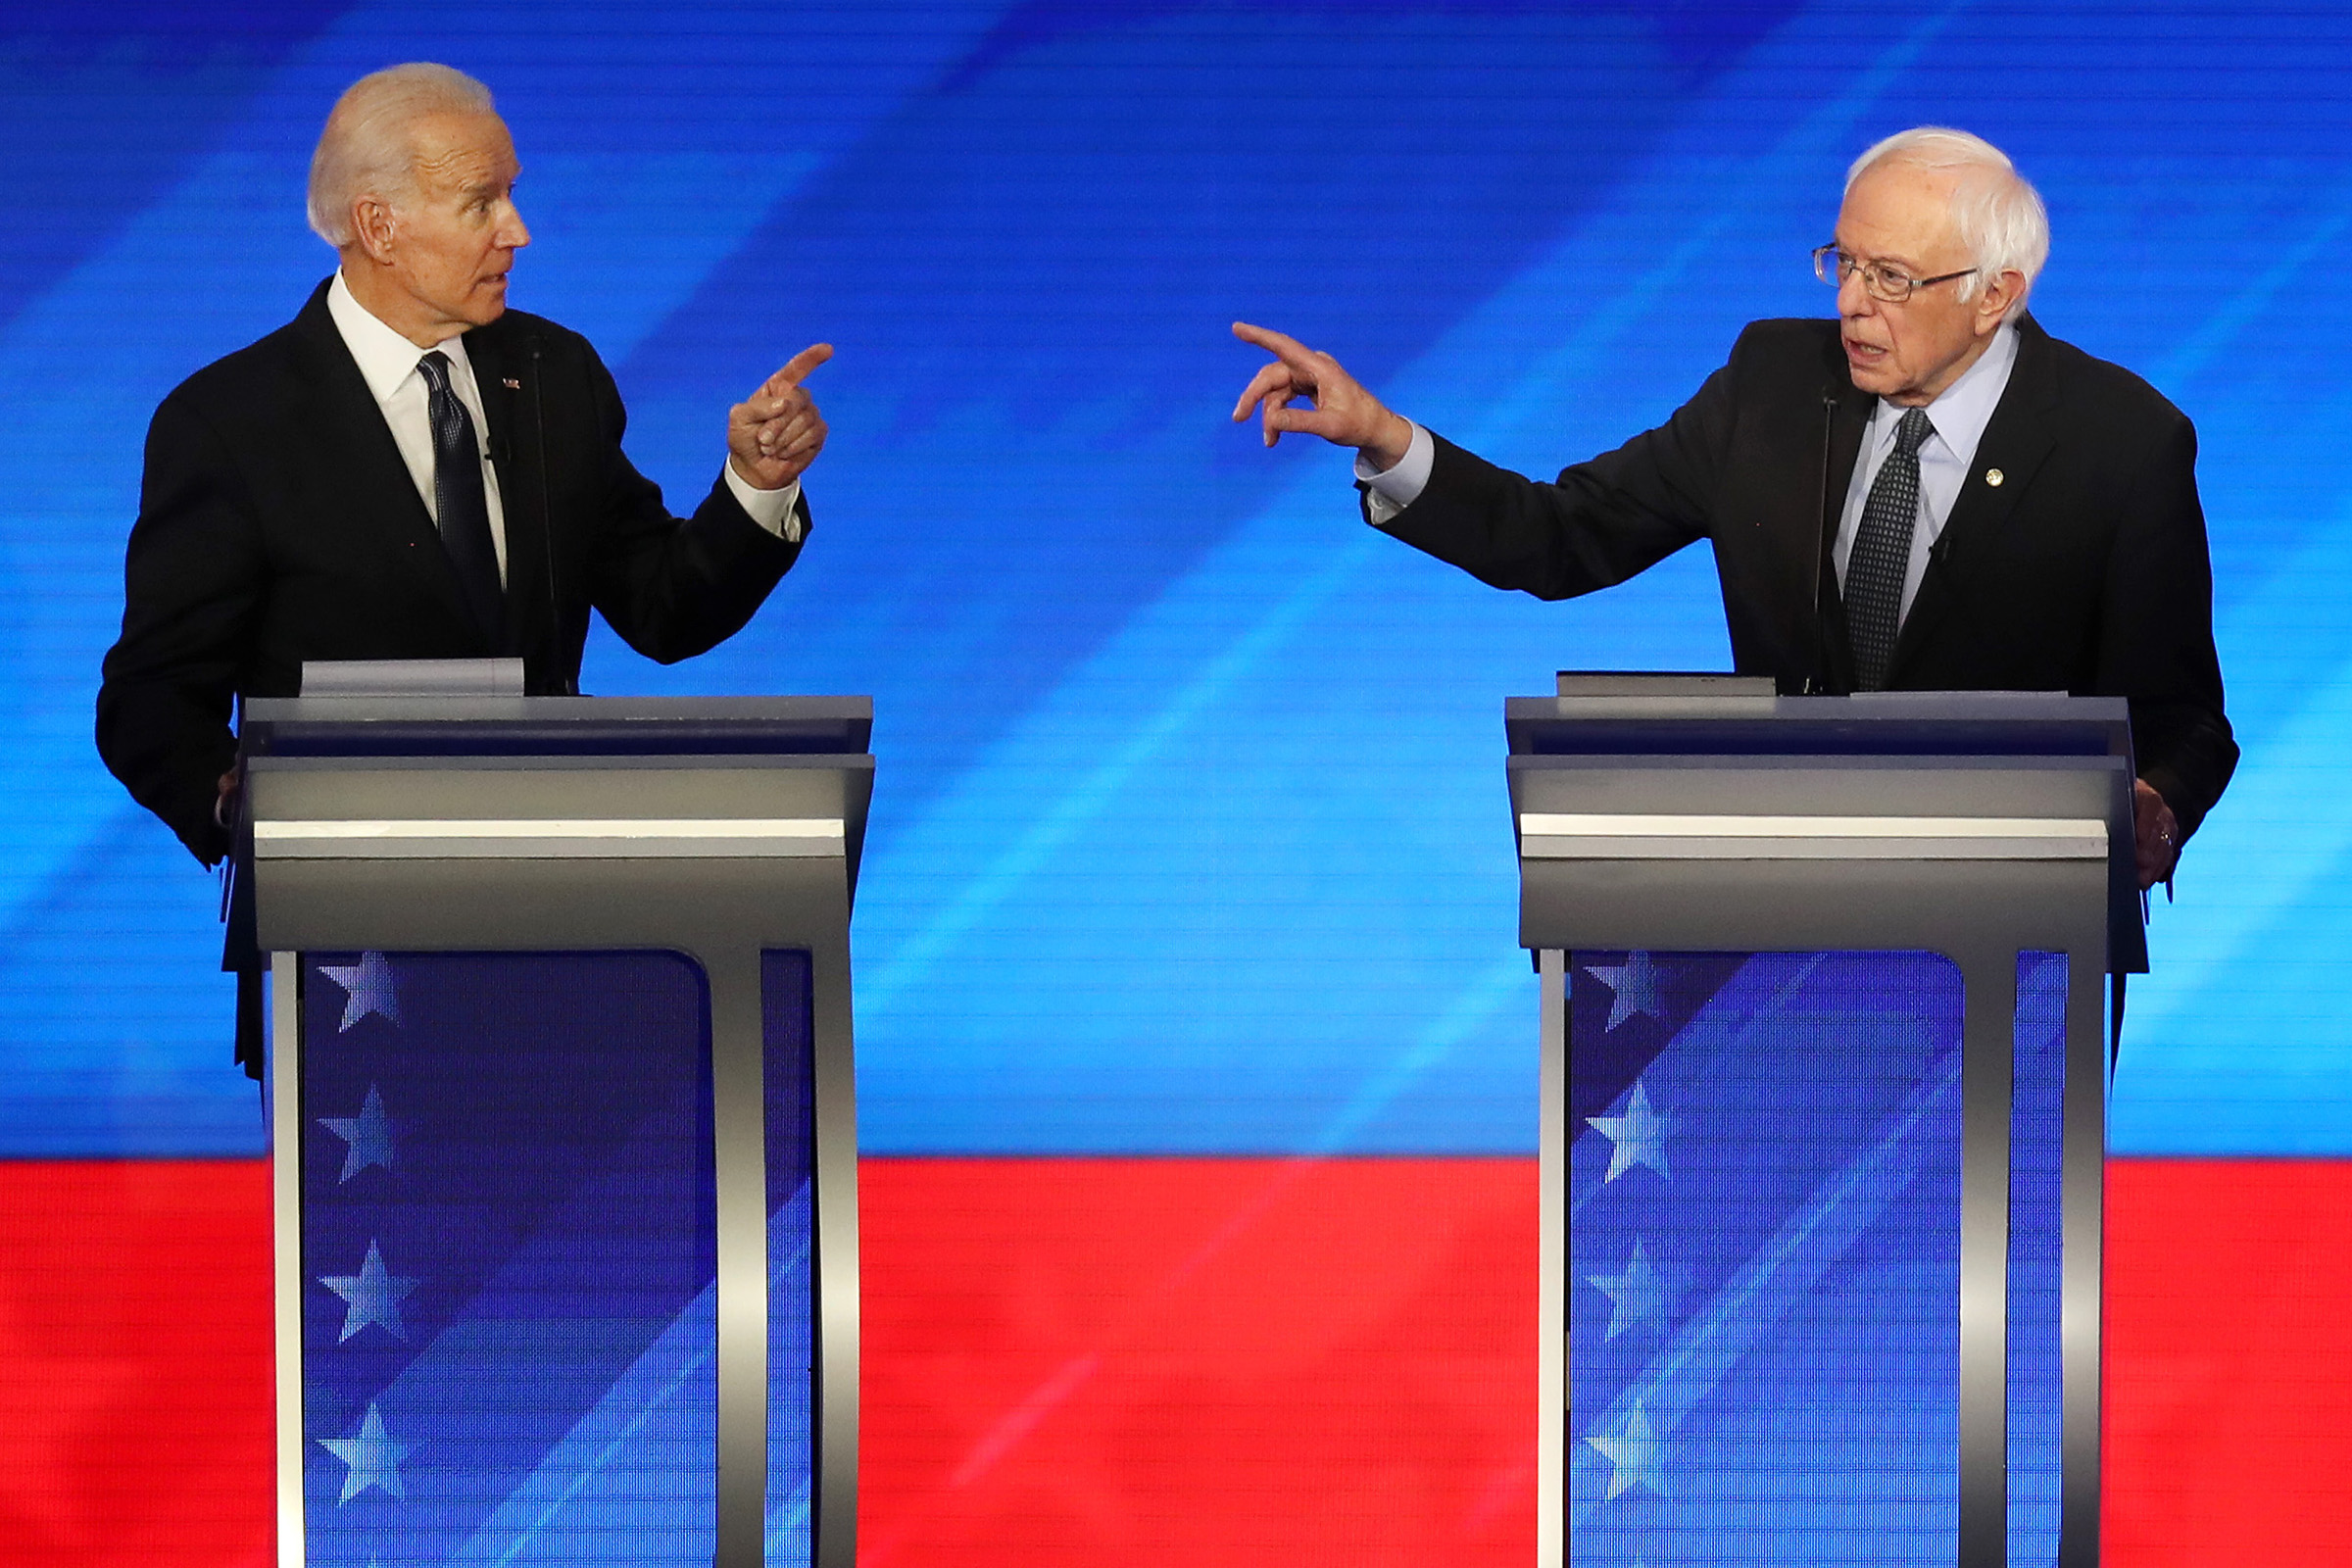 Democratic presidential candidates former Vice President Joe Biden and Sen. Bernie Sanders (I-VT) participate in the Democratic presidential primary debate in Manchester, N.H. on Feb. 7, 2020.